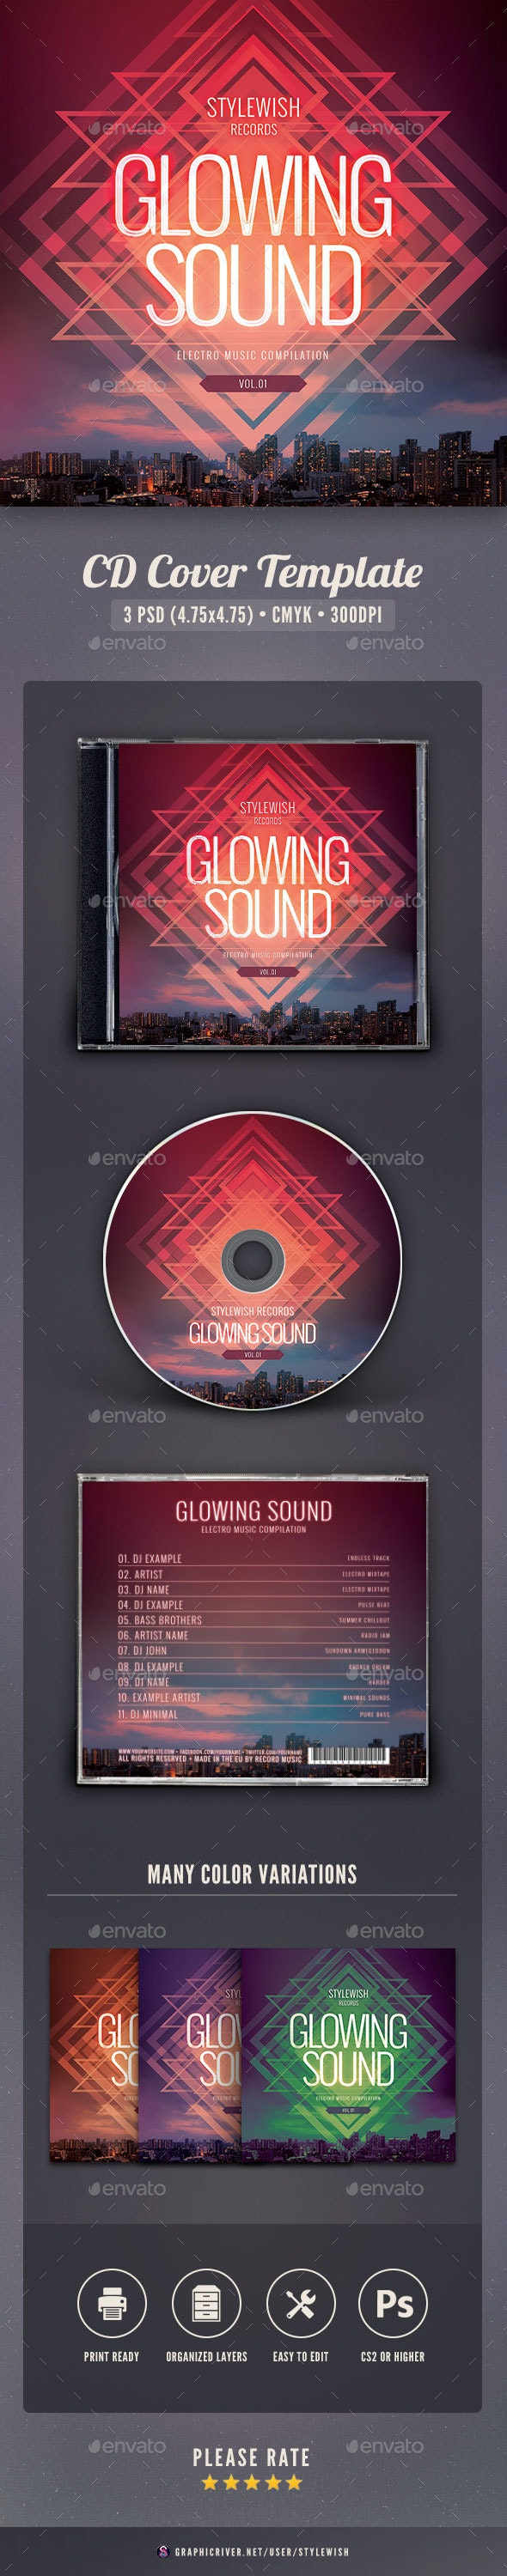 Glowing Sound CD Cover Artwork - CD & DVD Artwork Print Templates